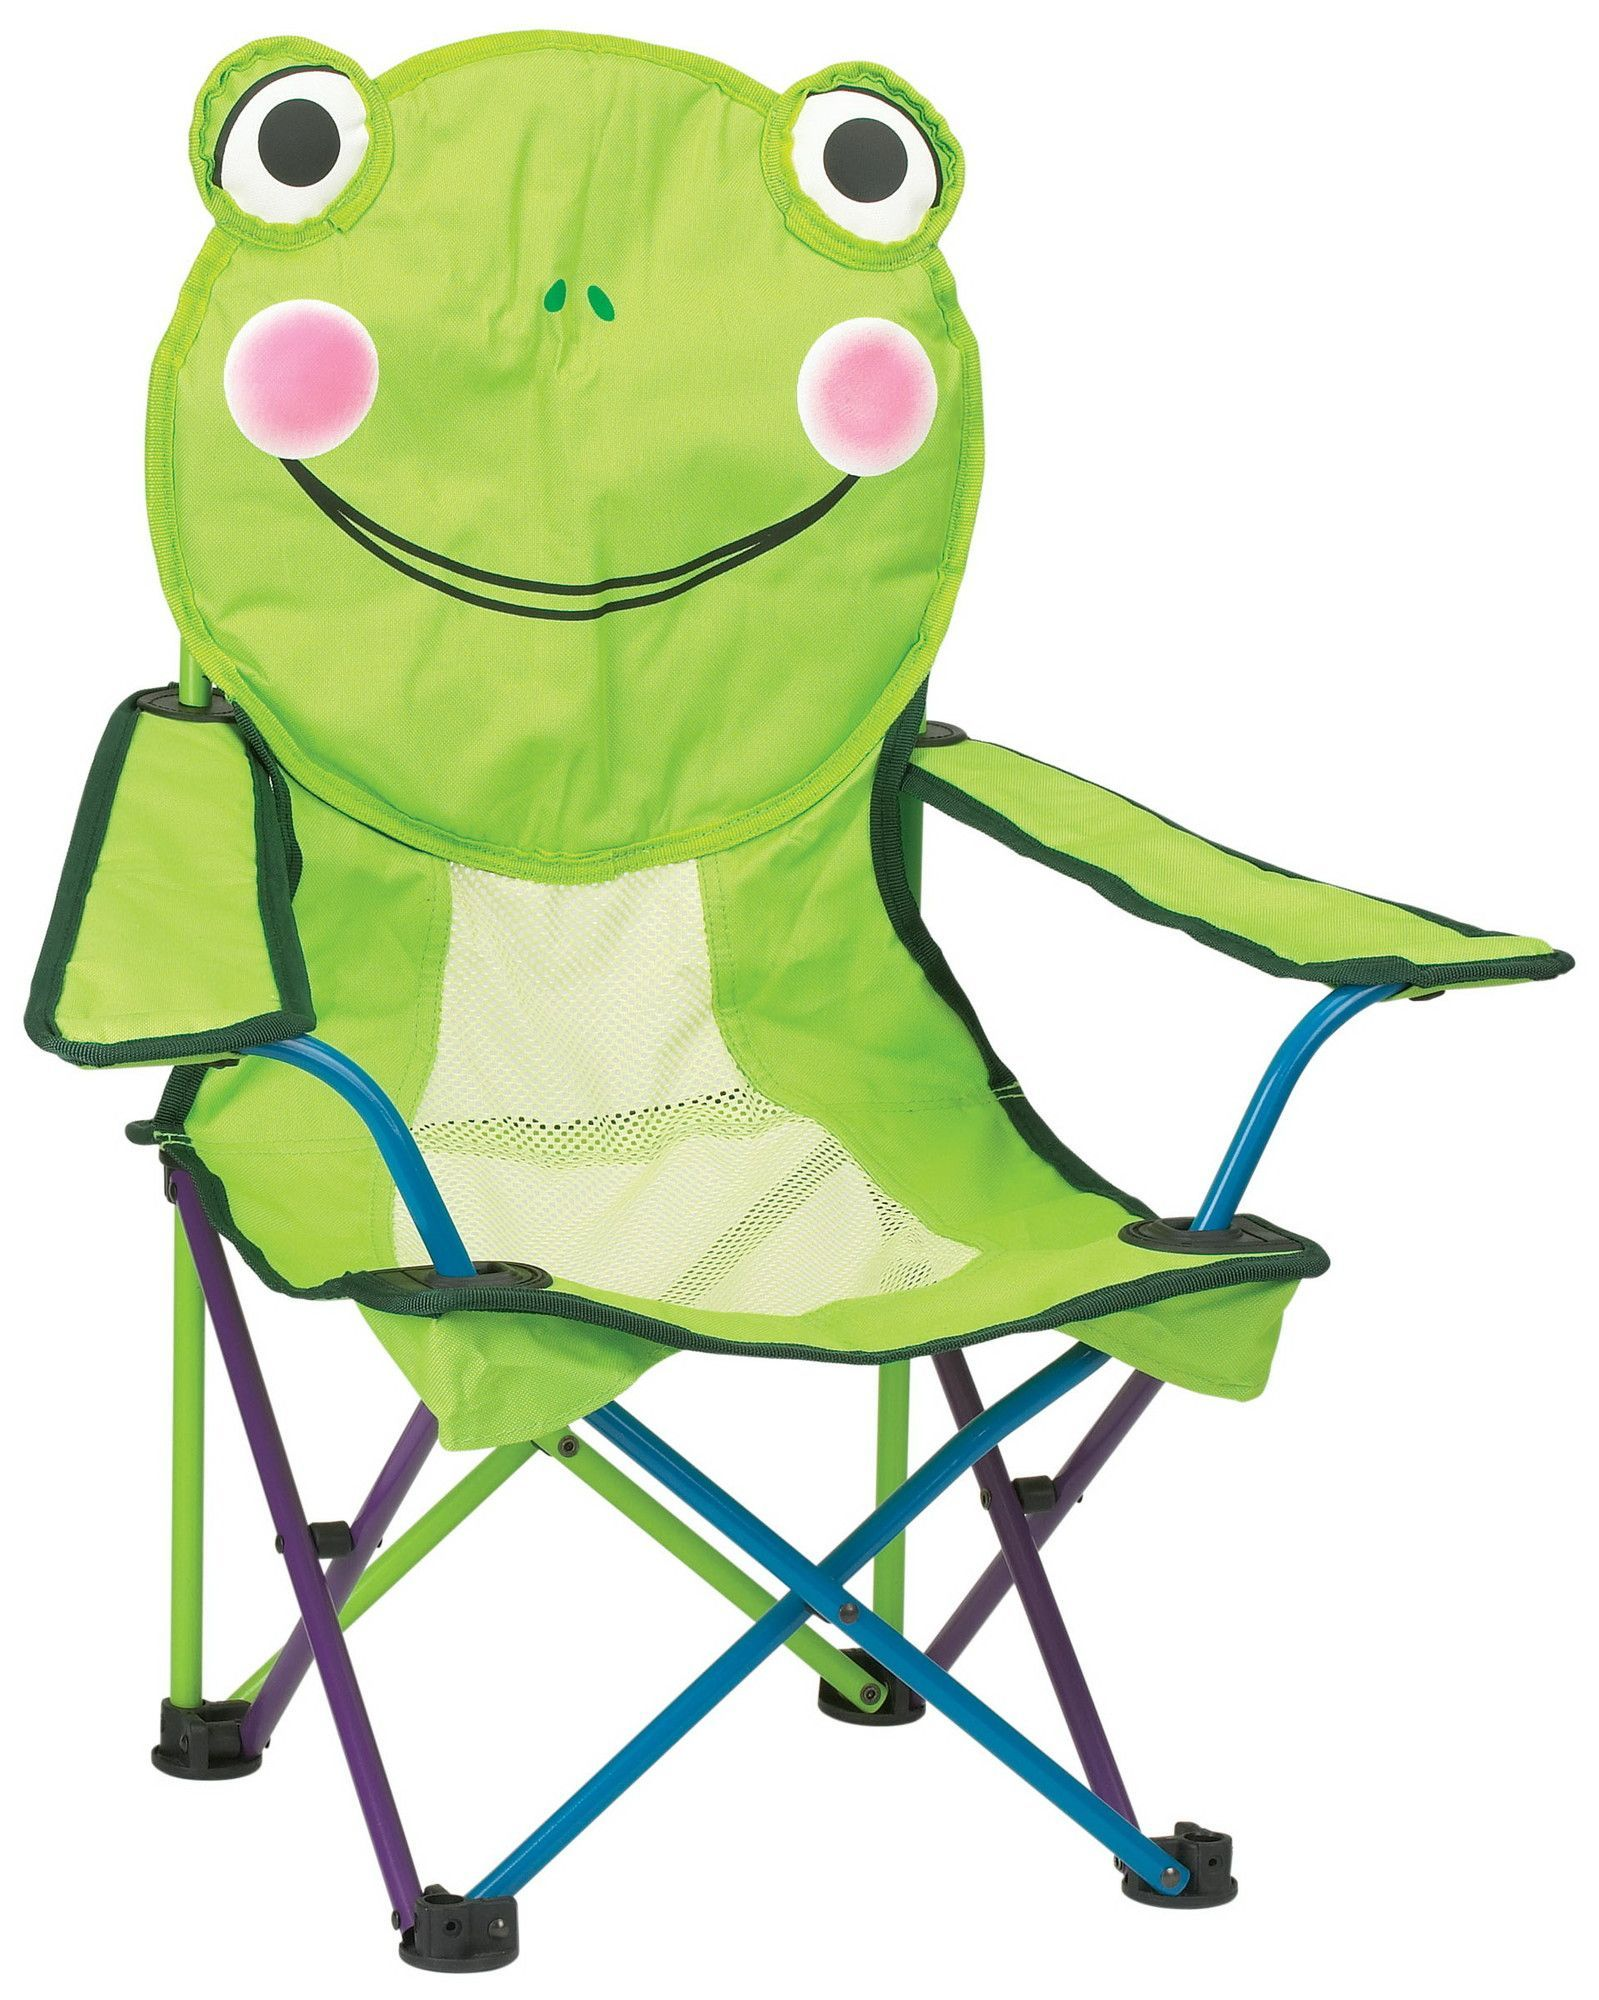 Freddy The Frog Kid's Beach Chair | Frogs | Kids Playroom